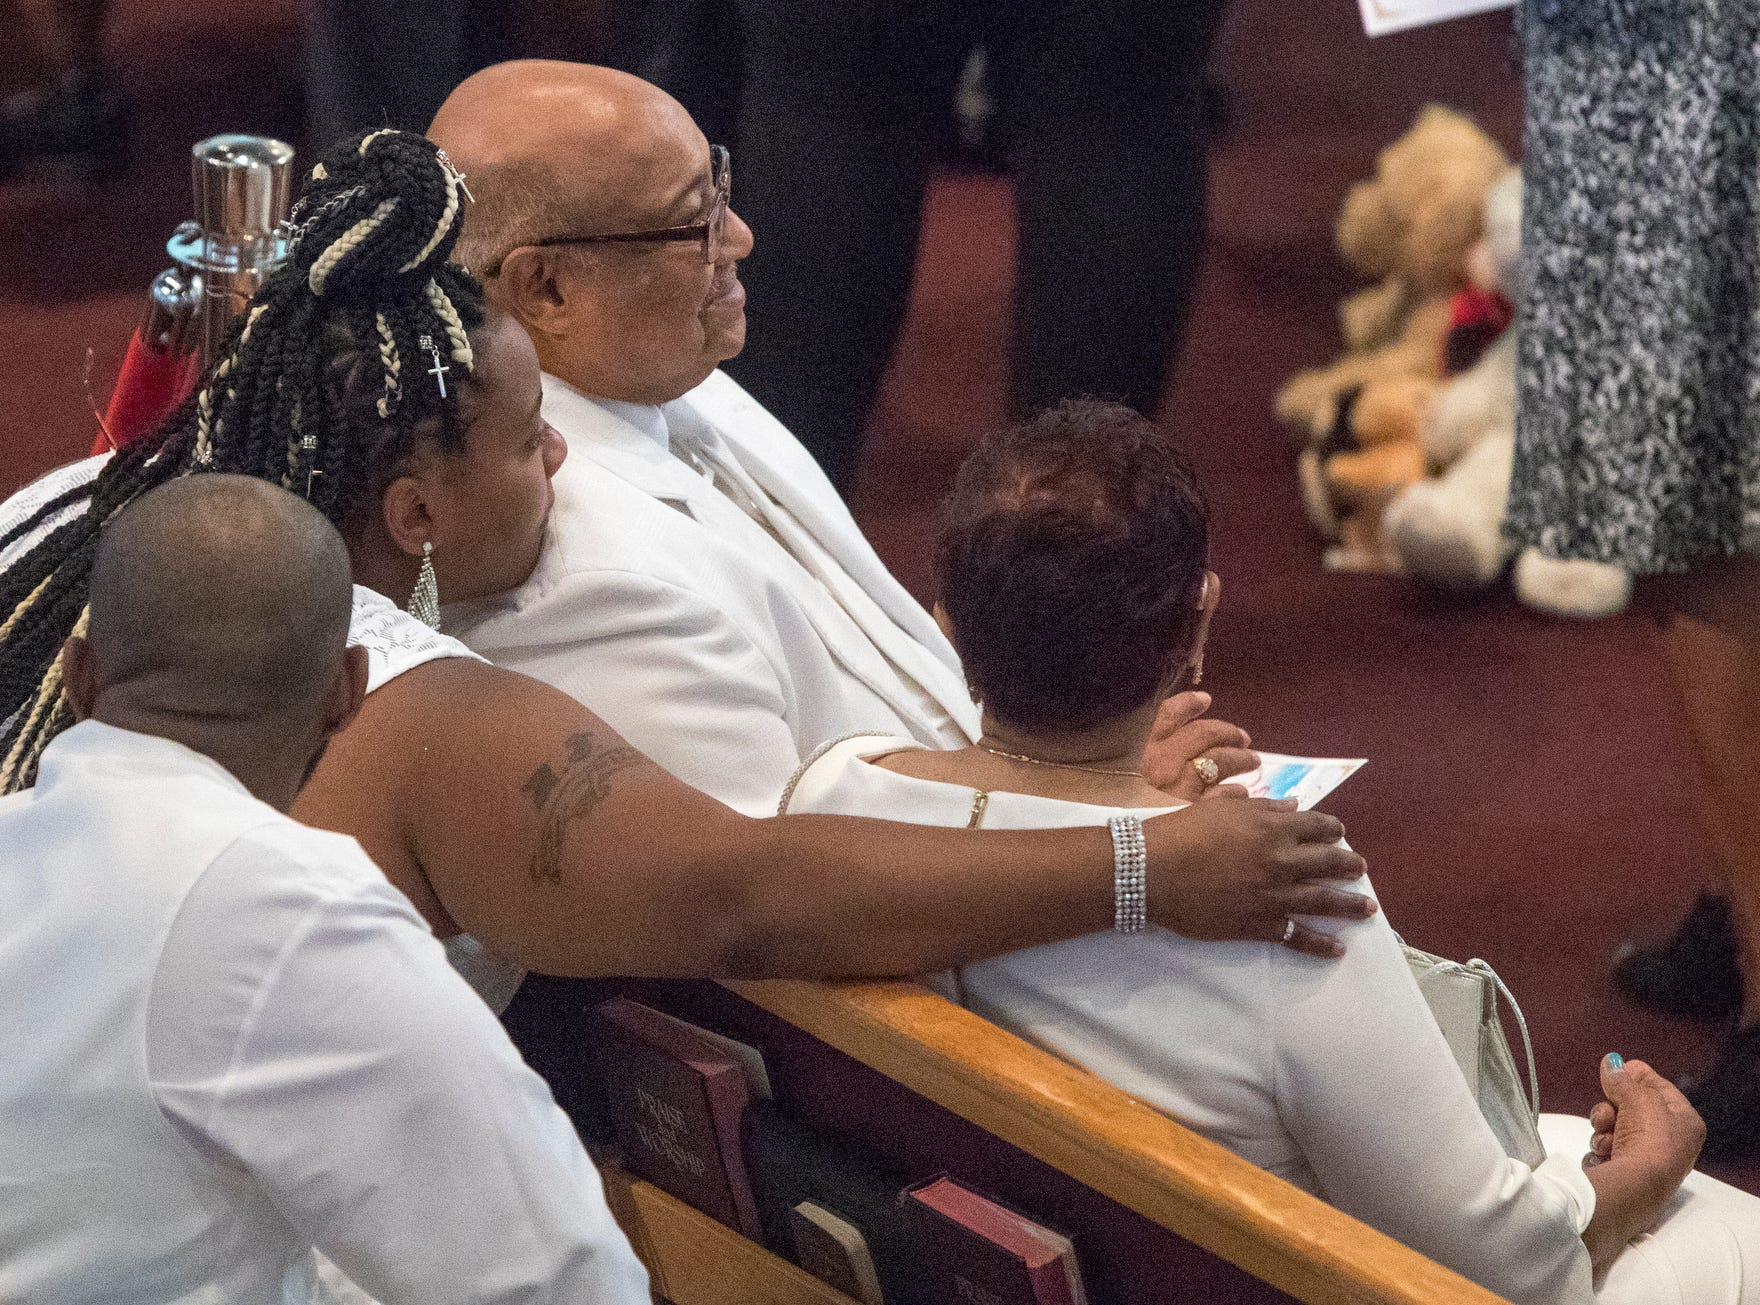 Family and friends watch others view the casket before the homegoing service of Glenn Coleman, 40, Reece, 9, Evan, 7, and Arya, 1, at Grace Apostolic Church on Friday, July 27, 2018. Seventeen people were killed in the duck boat accident in Branson, Missouri, nine of them were members of the Coleman family.